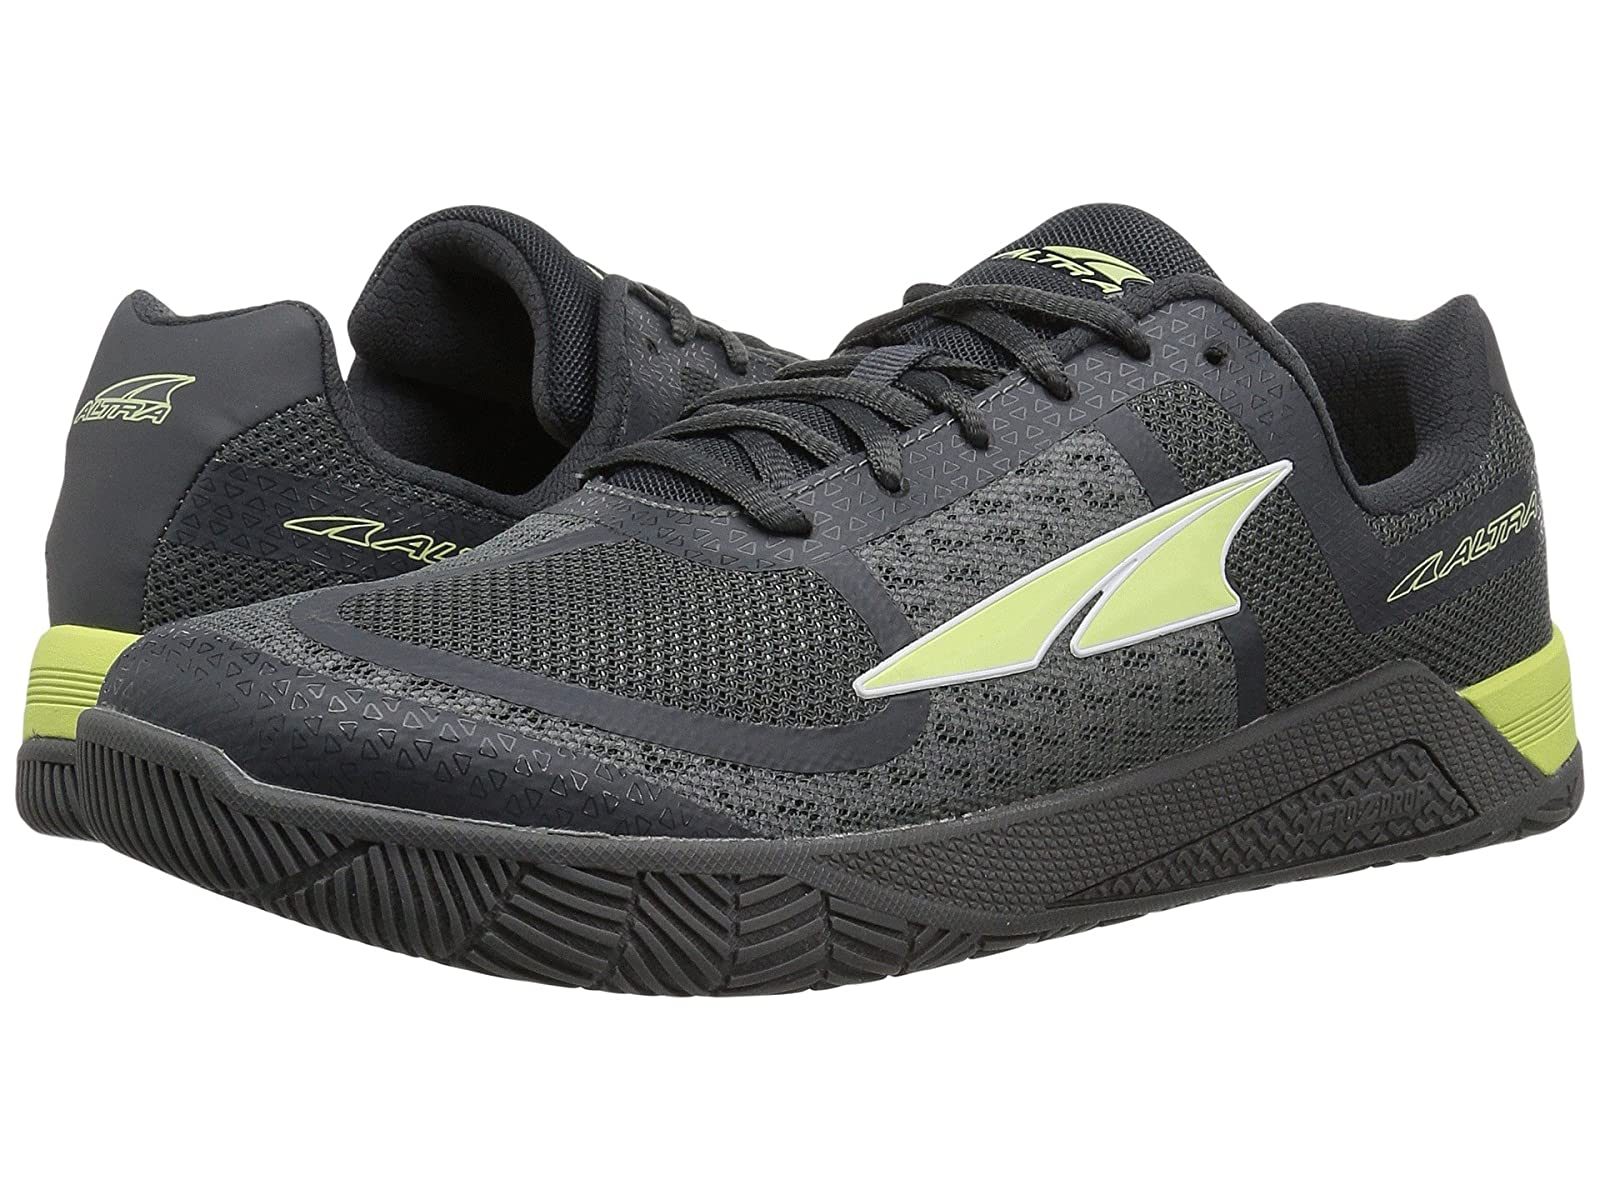 Altra Footwear Hiit XTCheap and distinctive eye-catching shoes